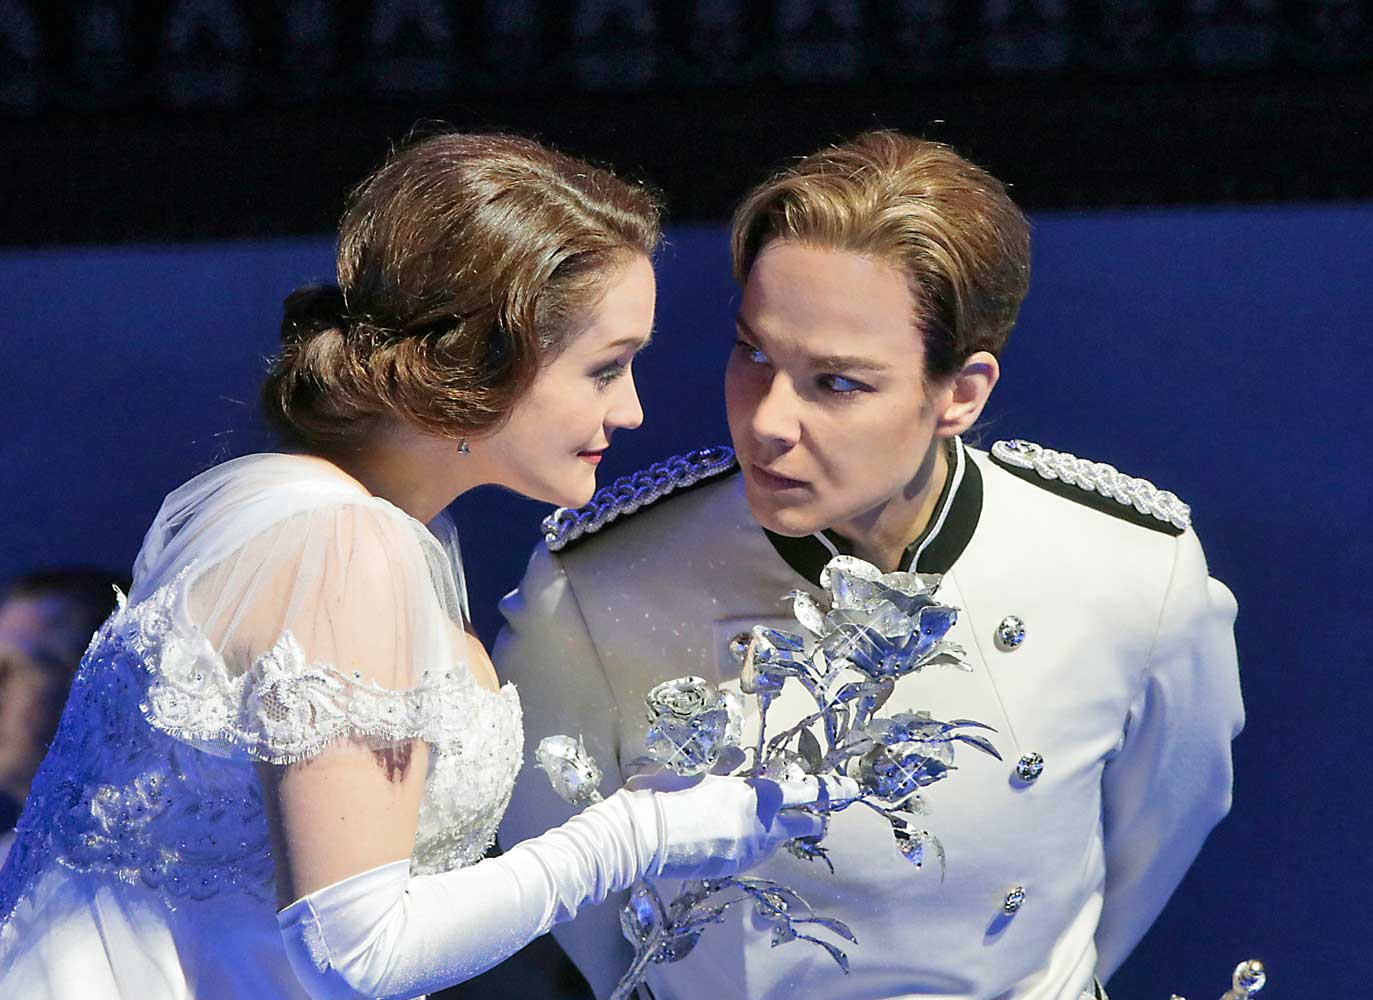 Erin Morley as Sophie and Elīna Garanča as Octavian in Strauss's Der Rosenkavalier. Photo by Ken Howard/Metropolitan Opera.